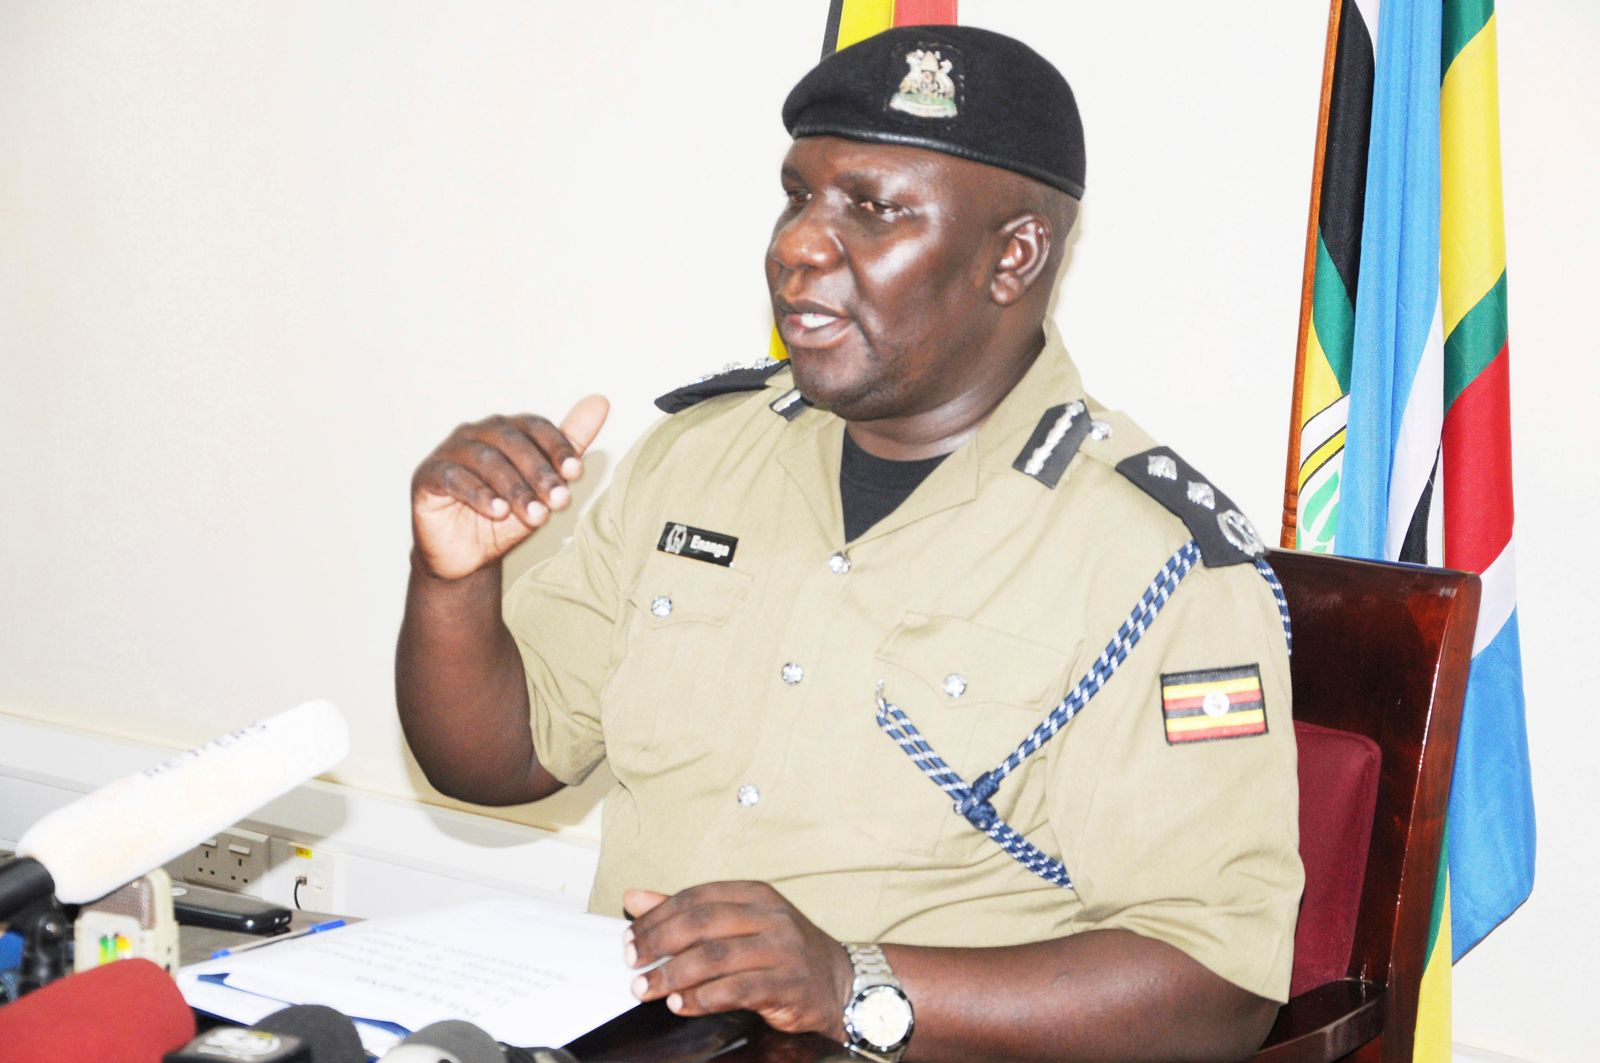 Police Spokesman Fred Enanga addressing a news Conference at the Police headquarters Monday, April 8. (AP Photo/Ronald Kabuubi)